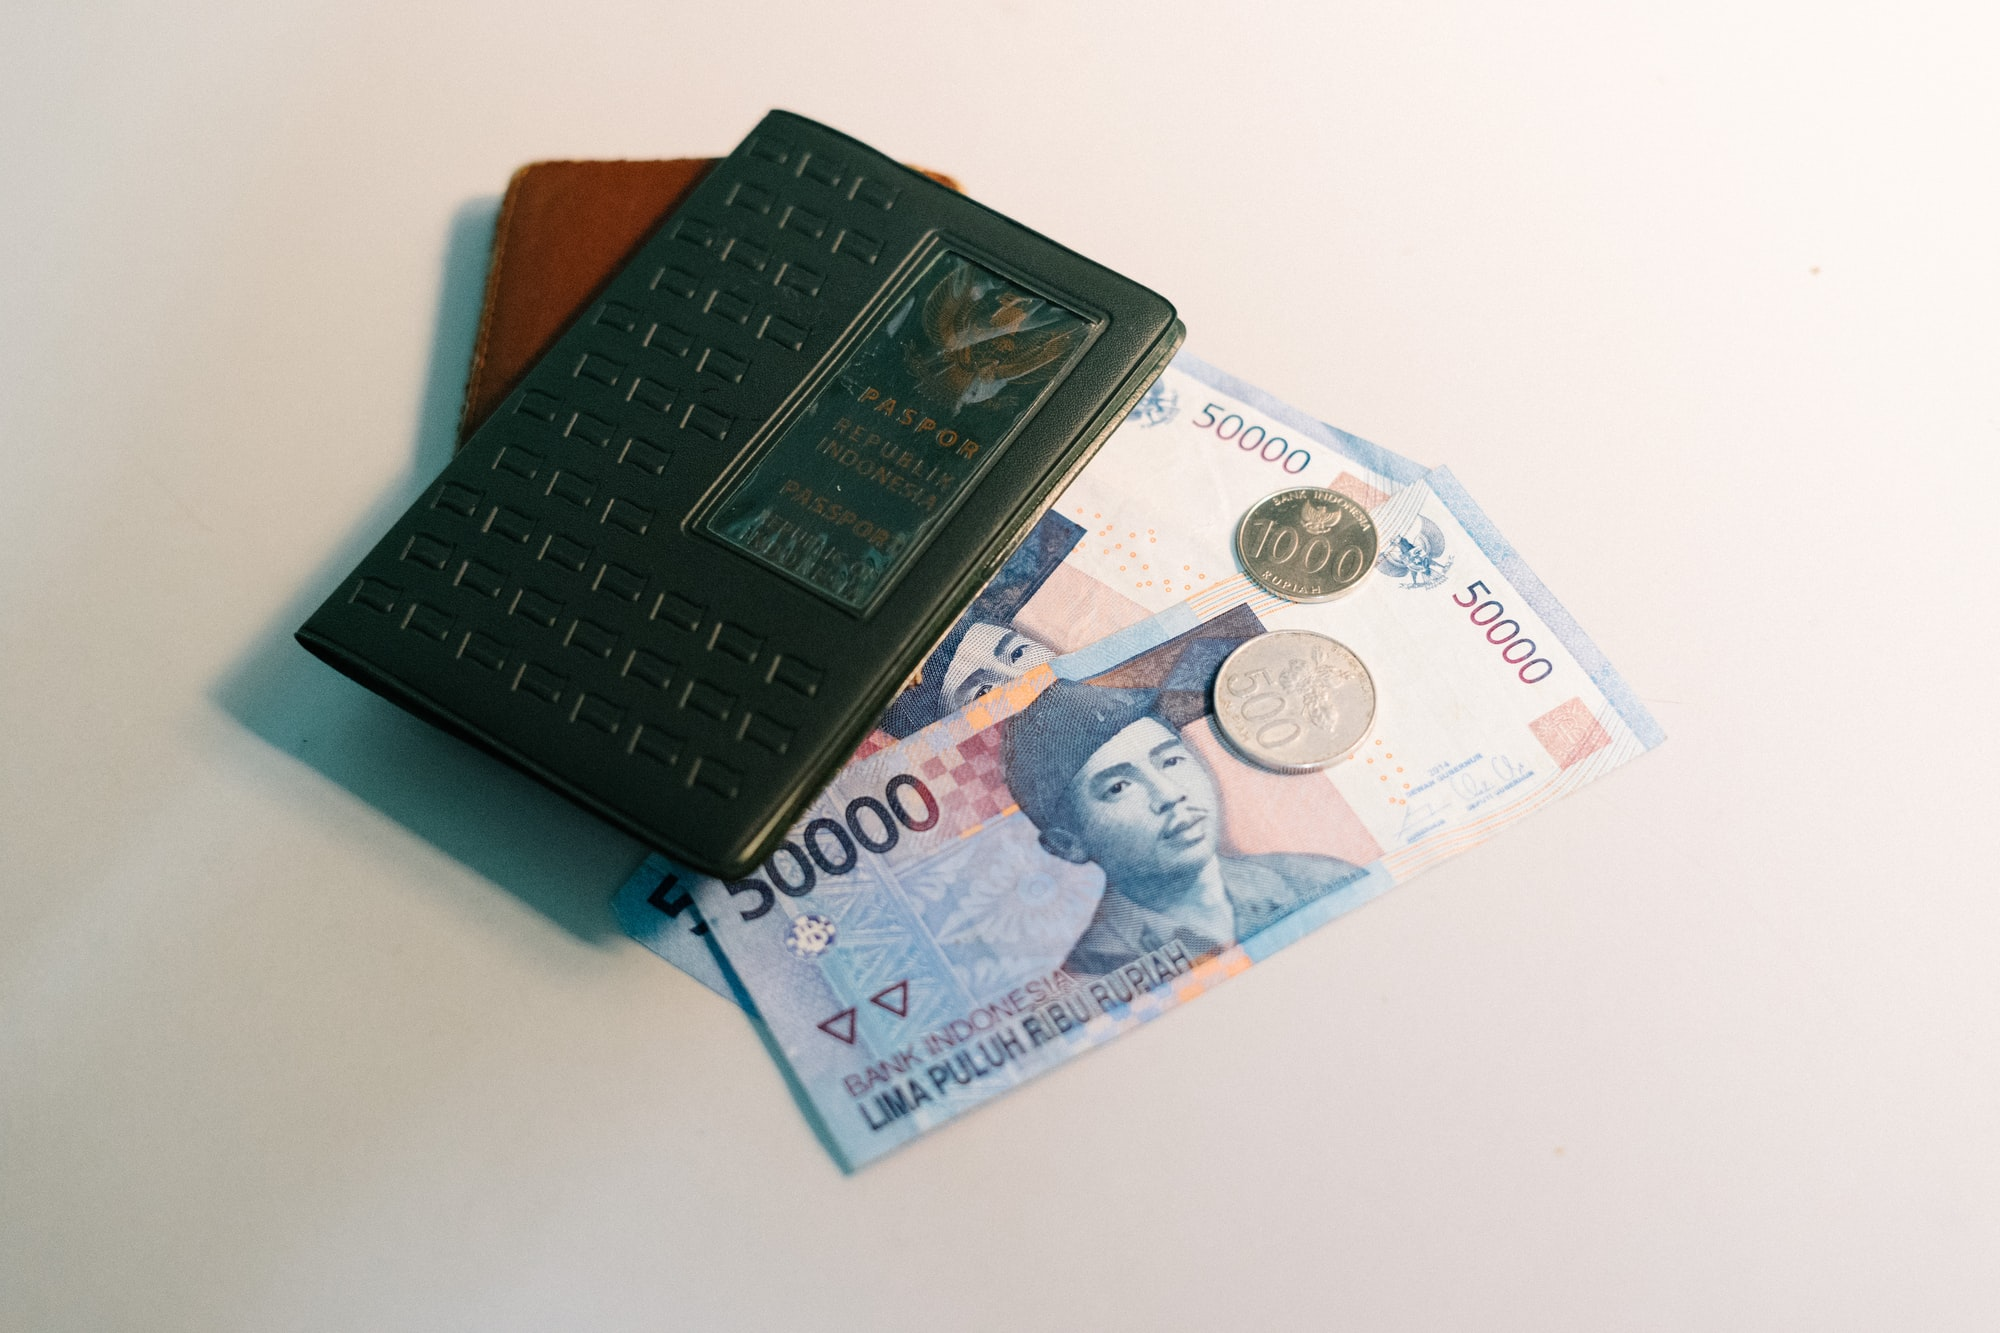 With passport, rupiah, and wallet